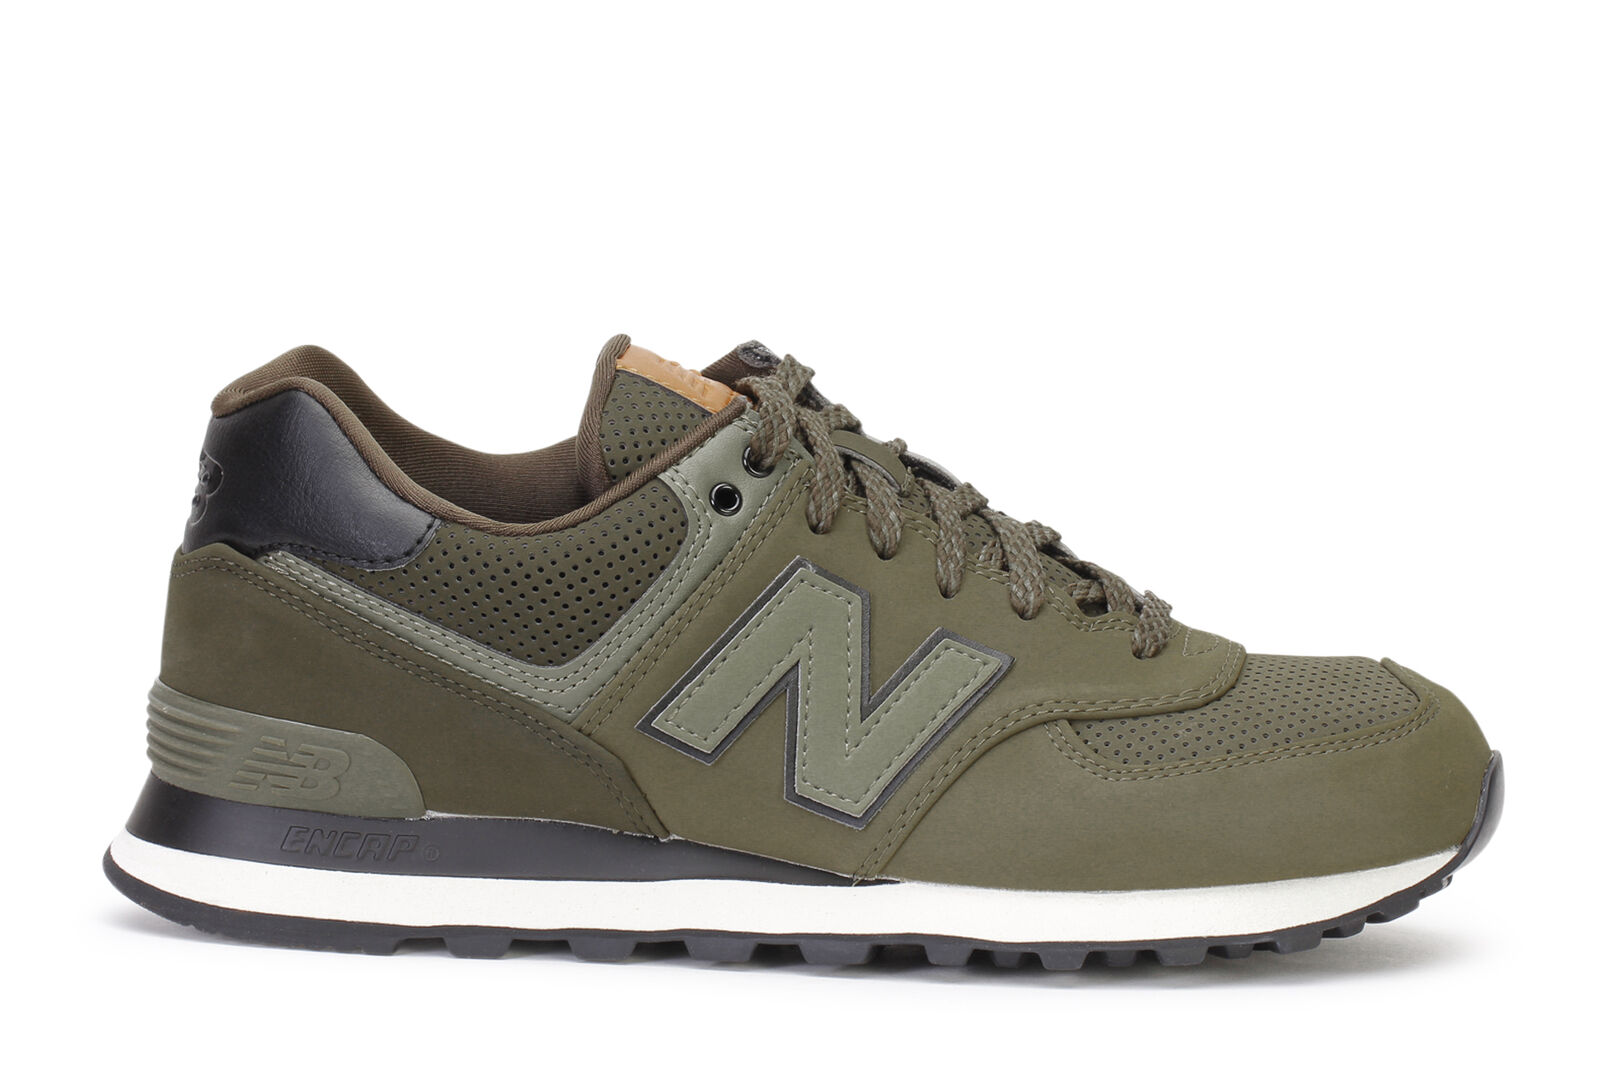 New Balance Men's Sneakers 574 Triumph Green Military ML574GPD